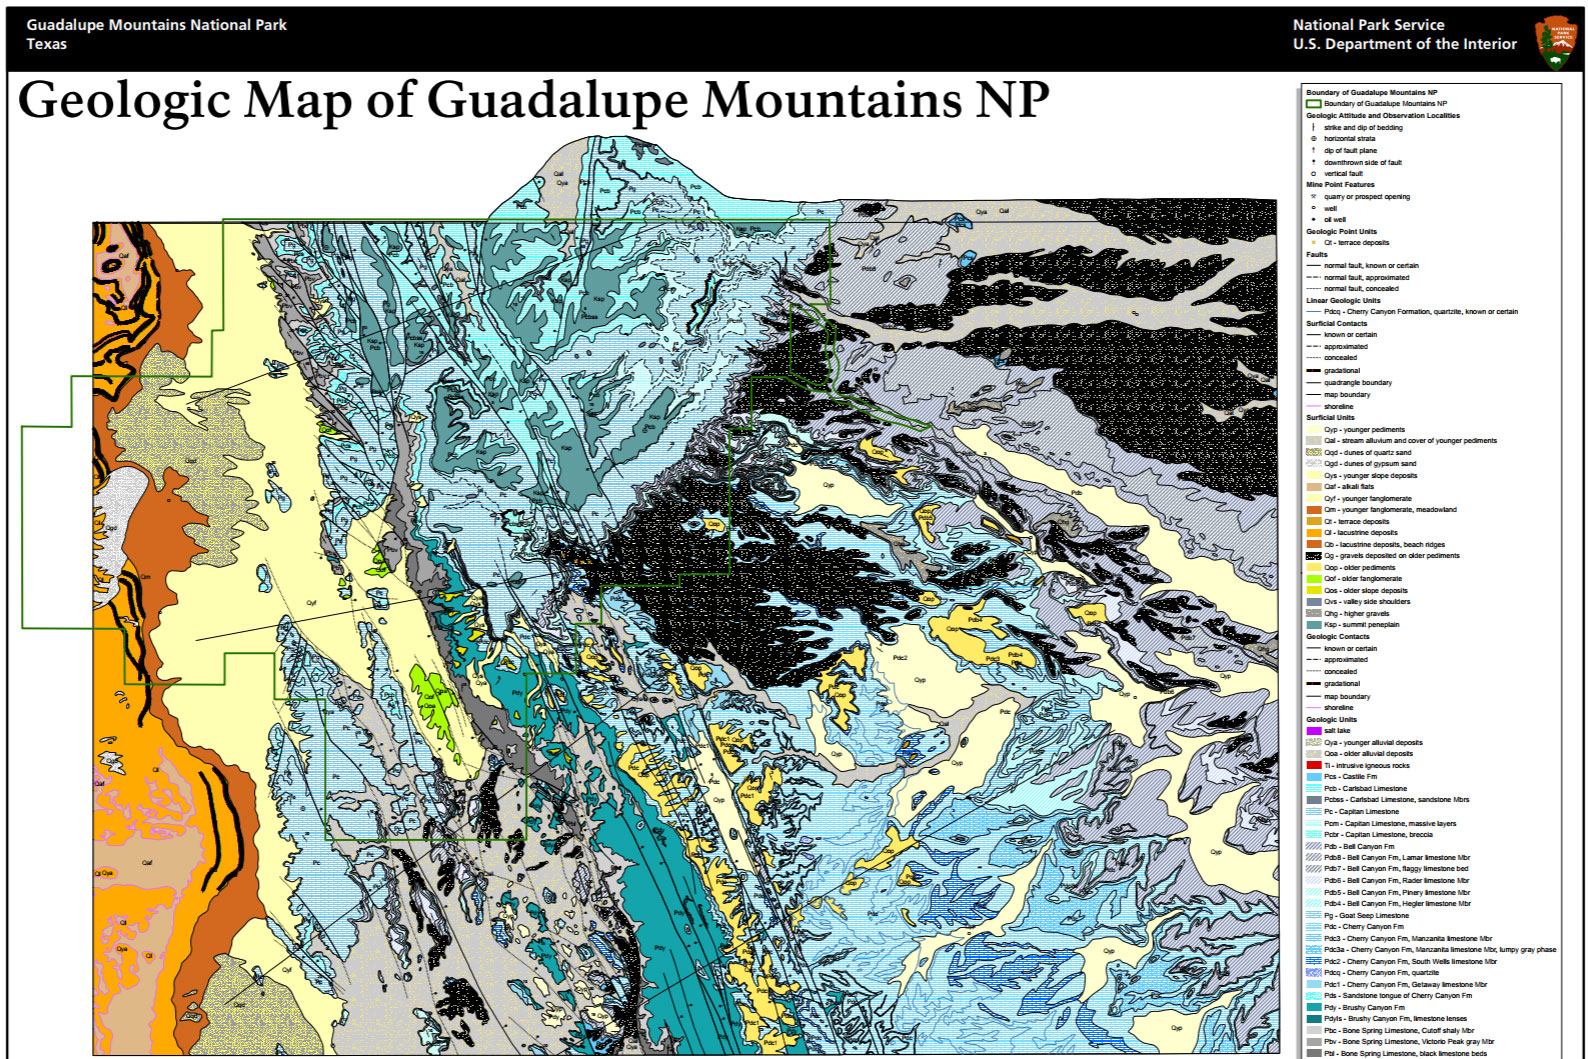 Nps Geodiversity Atlas Guadalupe Mountains National Park Texas